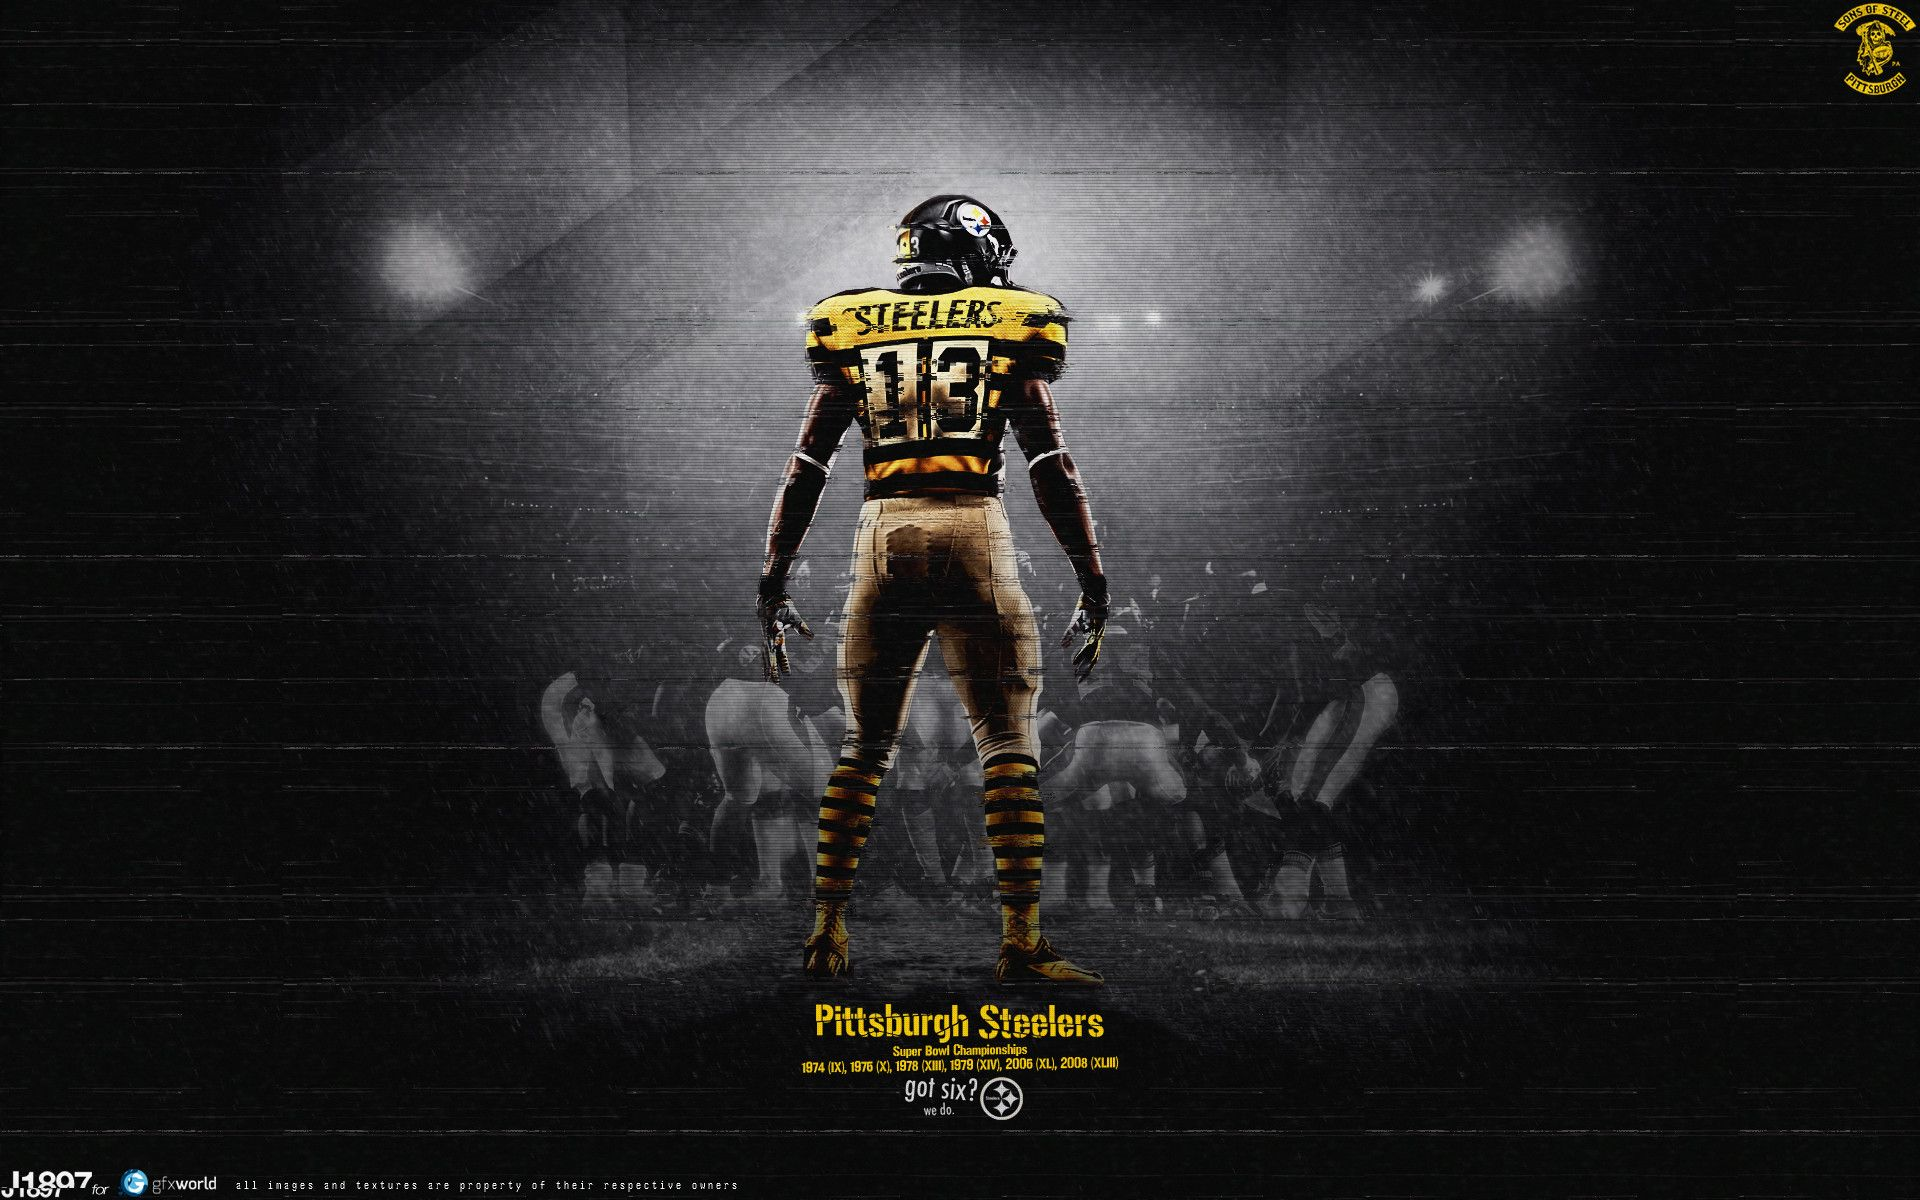 Pittsburgh Steelers Backgrounds Pittsburgh Steelers Wallpaper Pittsburgh Steelers Steelers Images